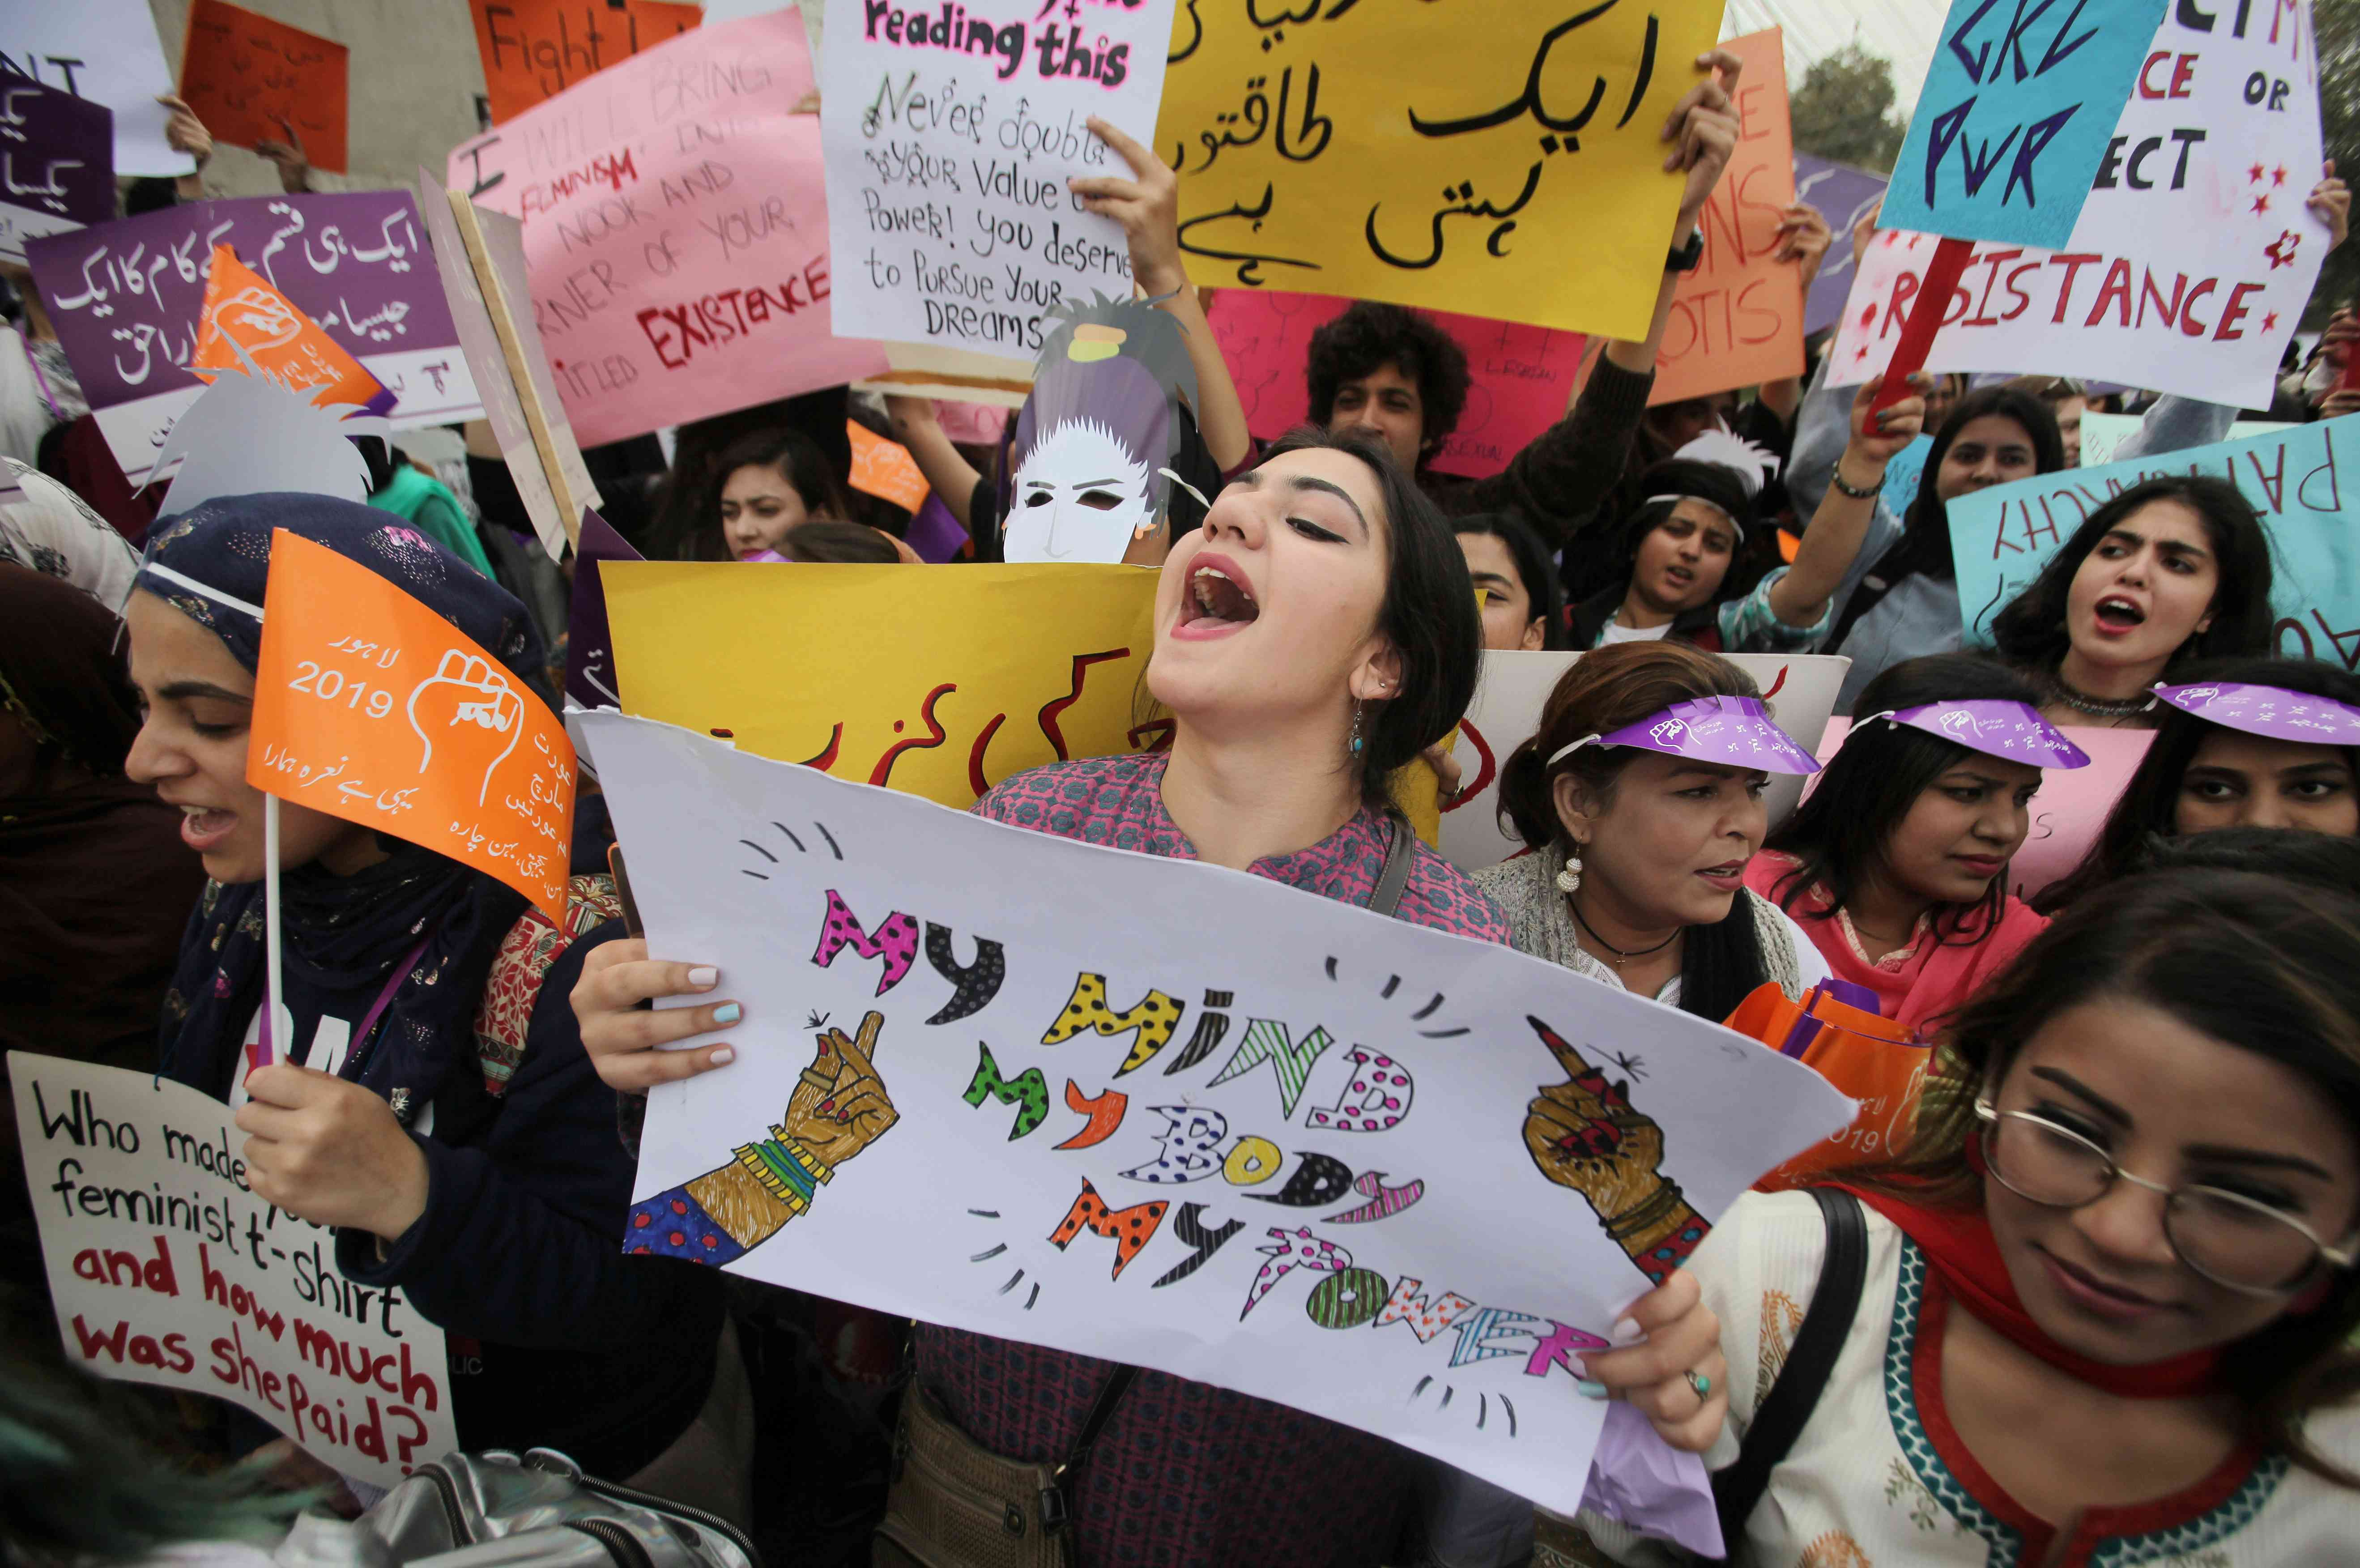 A woman carries a sign and chants slogans during a rally to mark International Women's Day in Lahore, Pakistan March 8, 2019. (Photo credit: Reuters/Mohsin Raza).